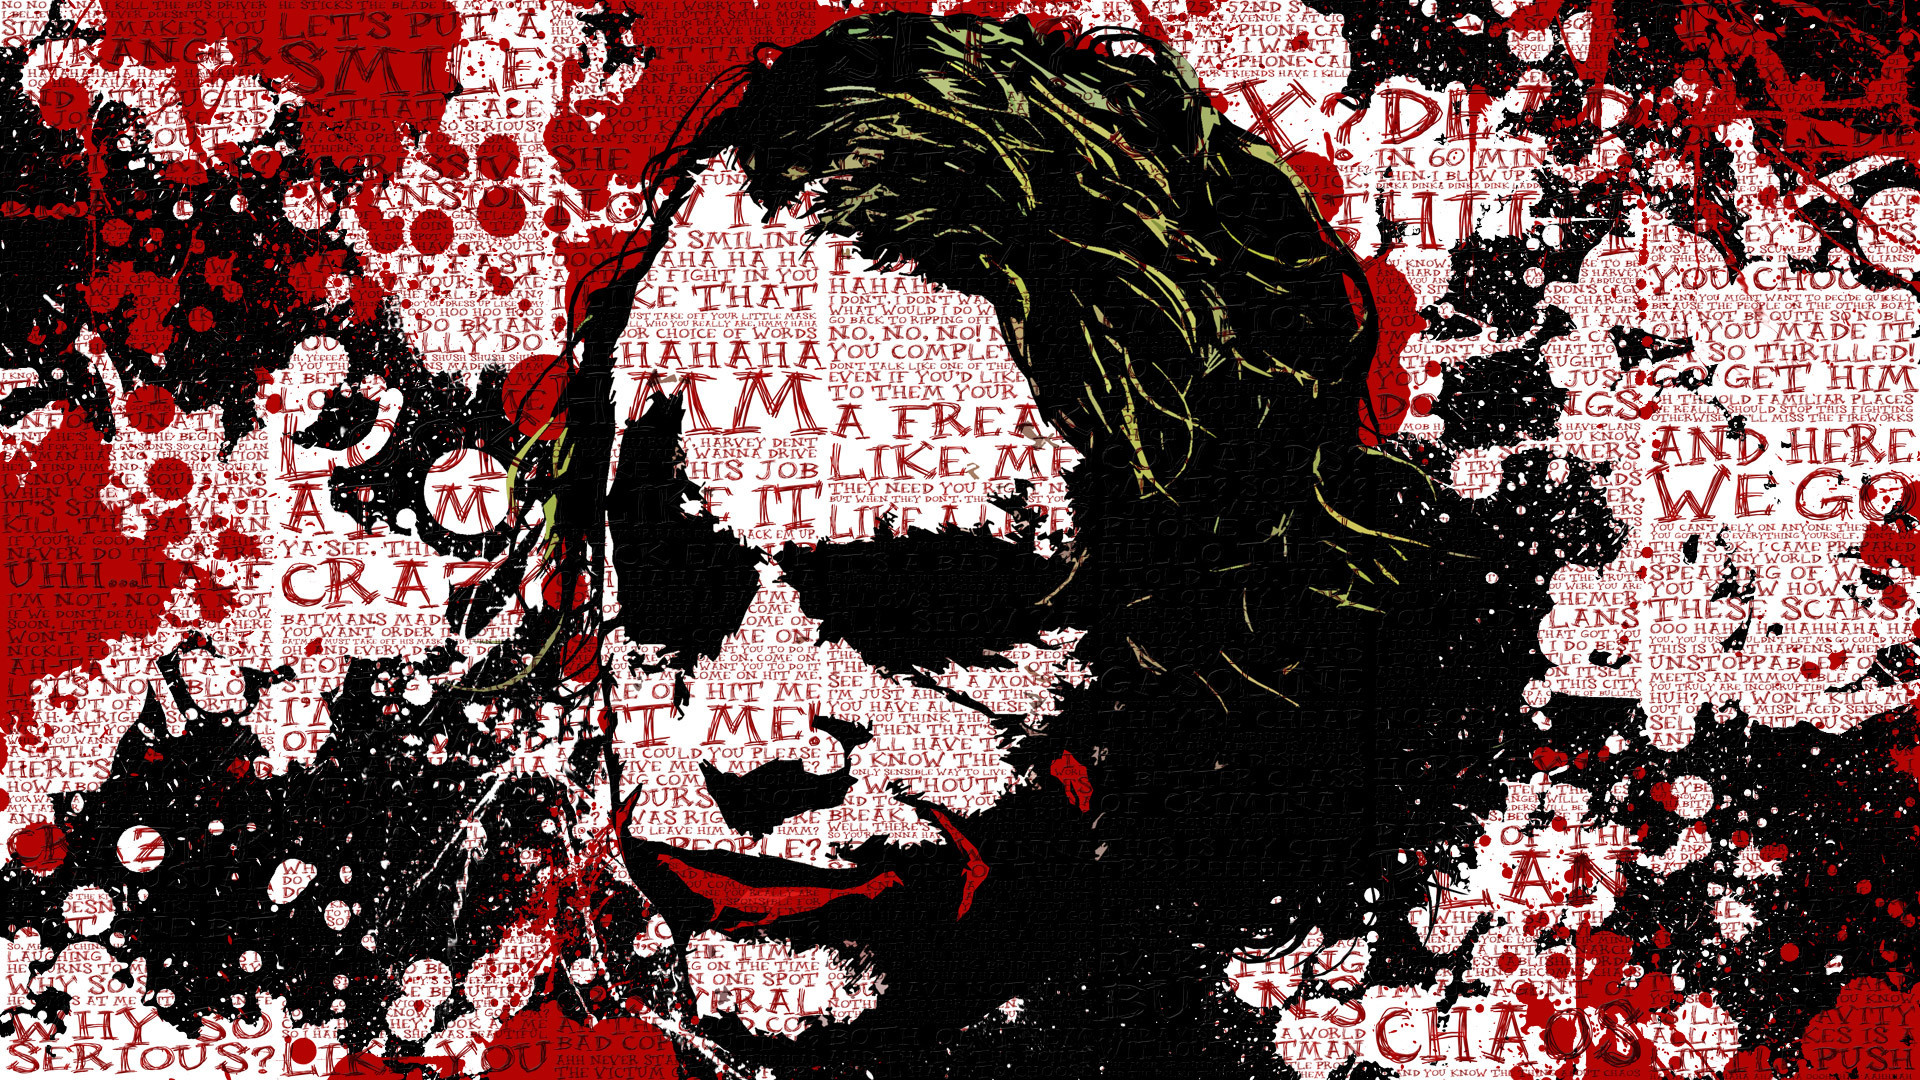 Joker citations